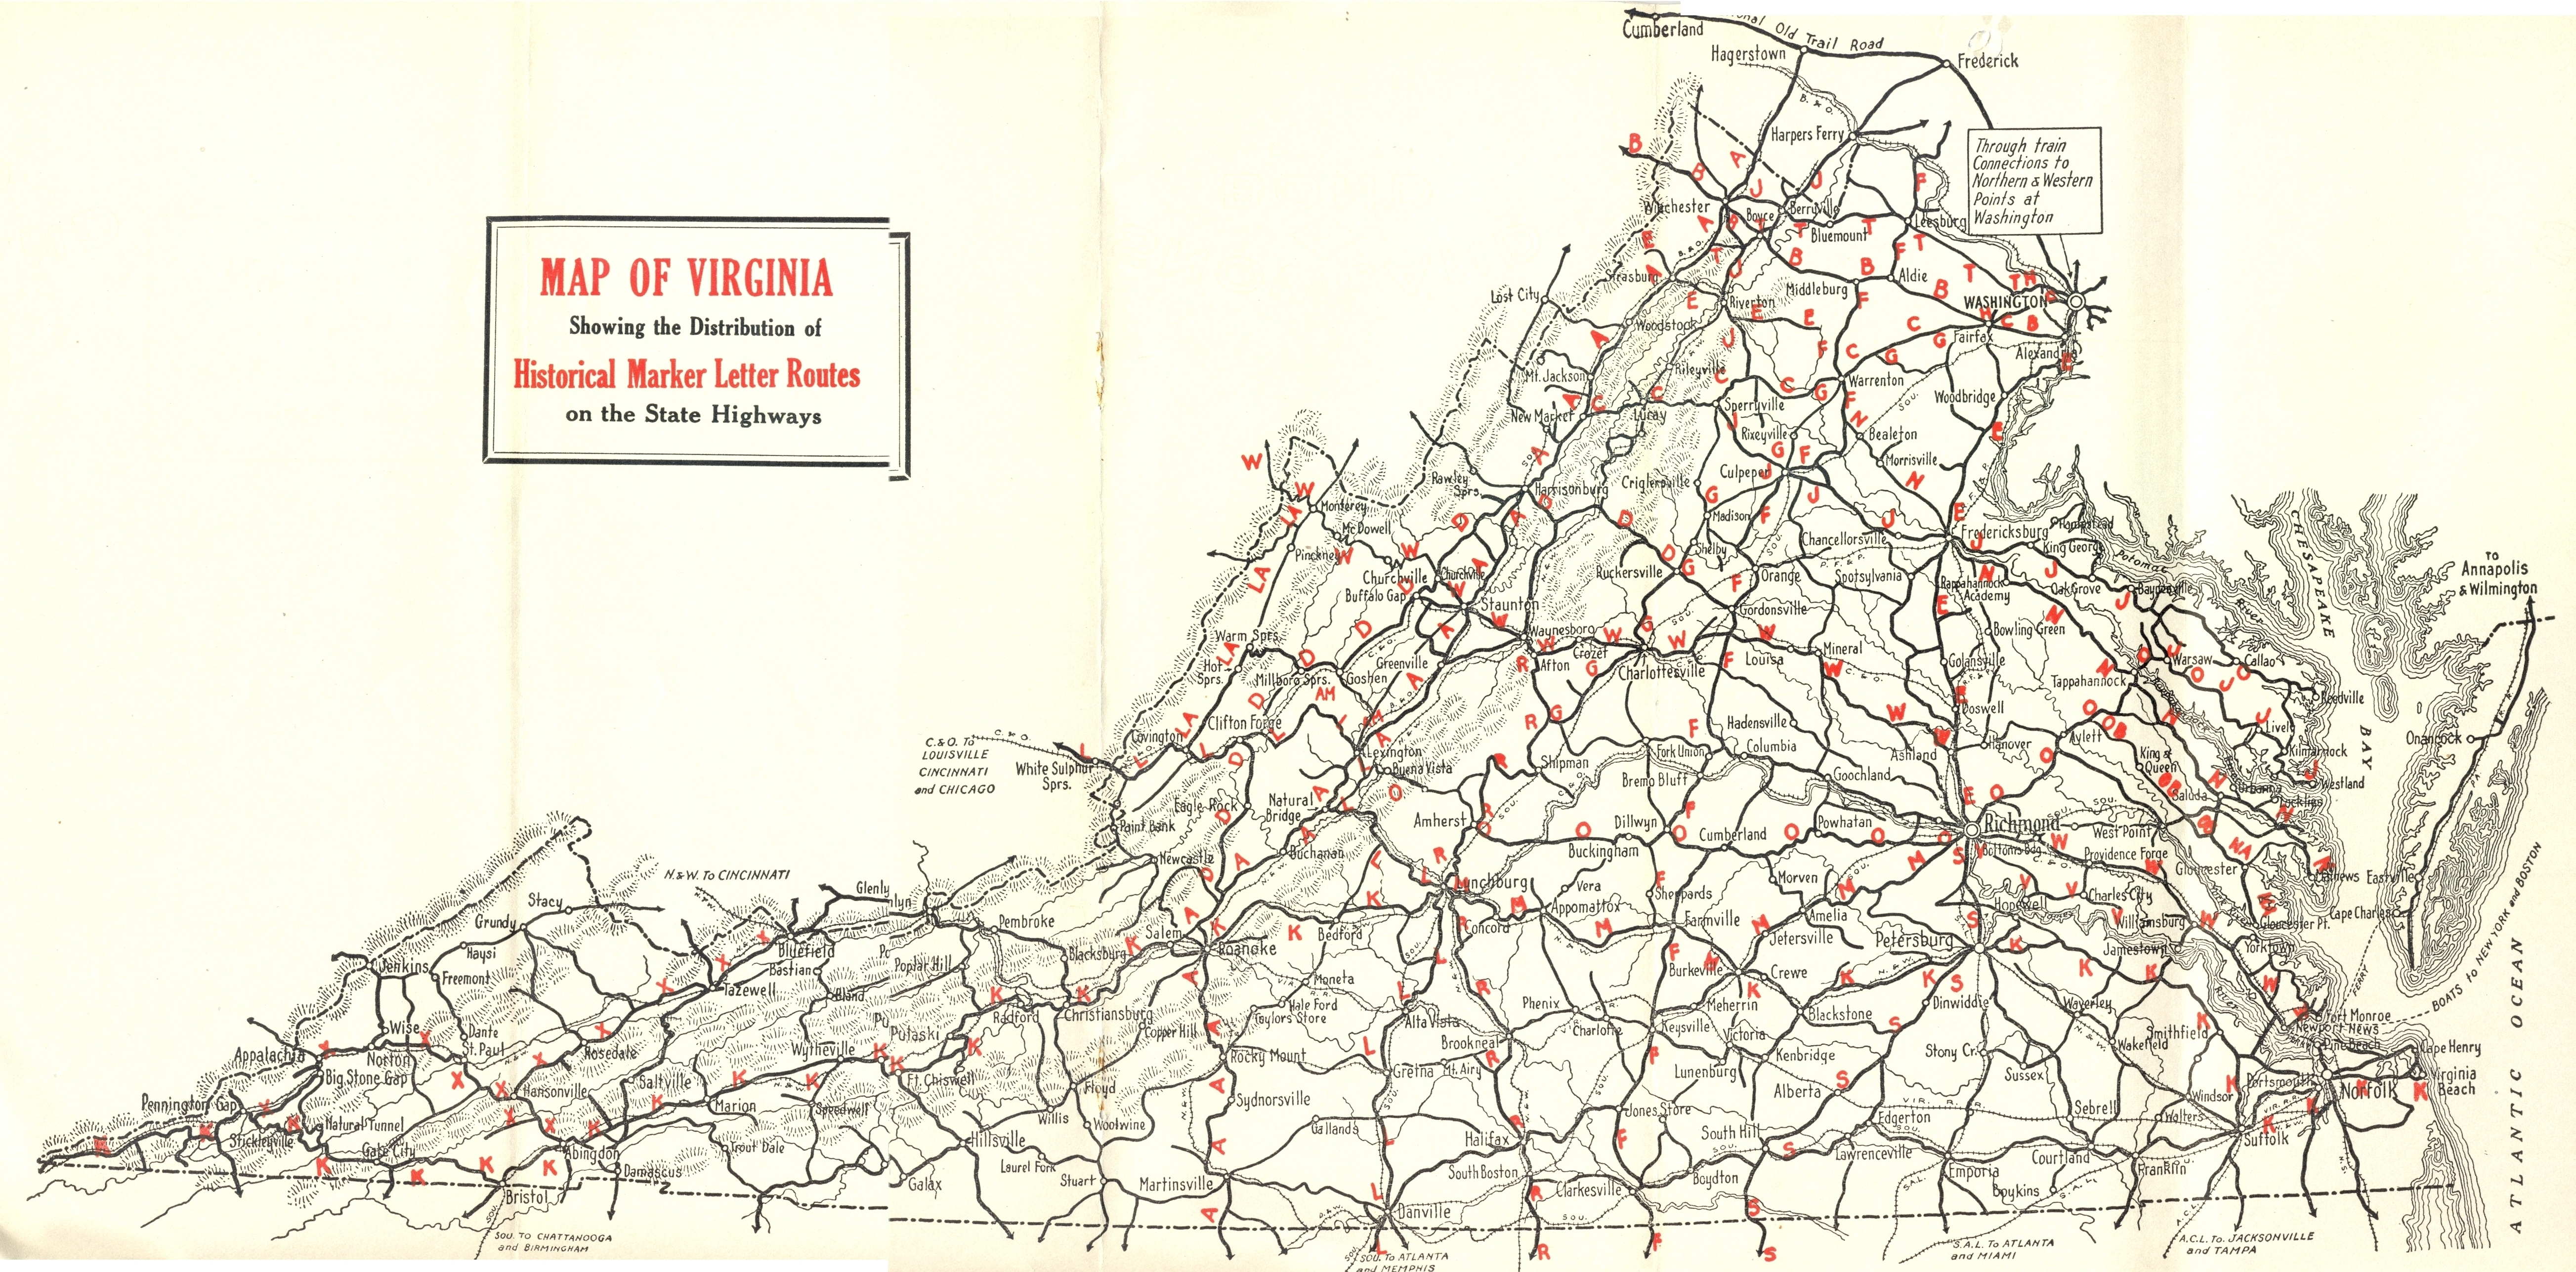 1929 Virginia Historical Marker Letter Routes